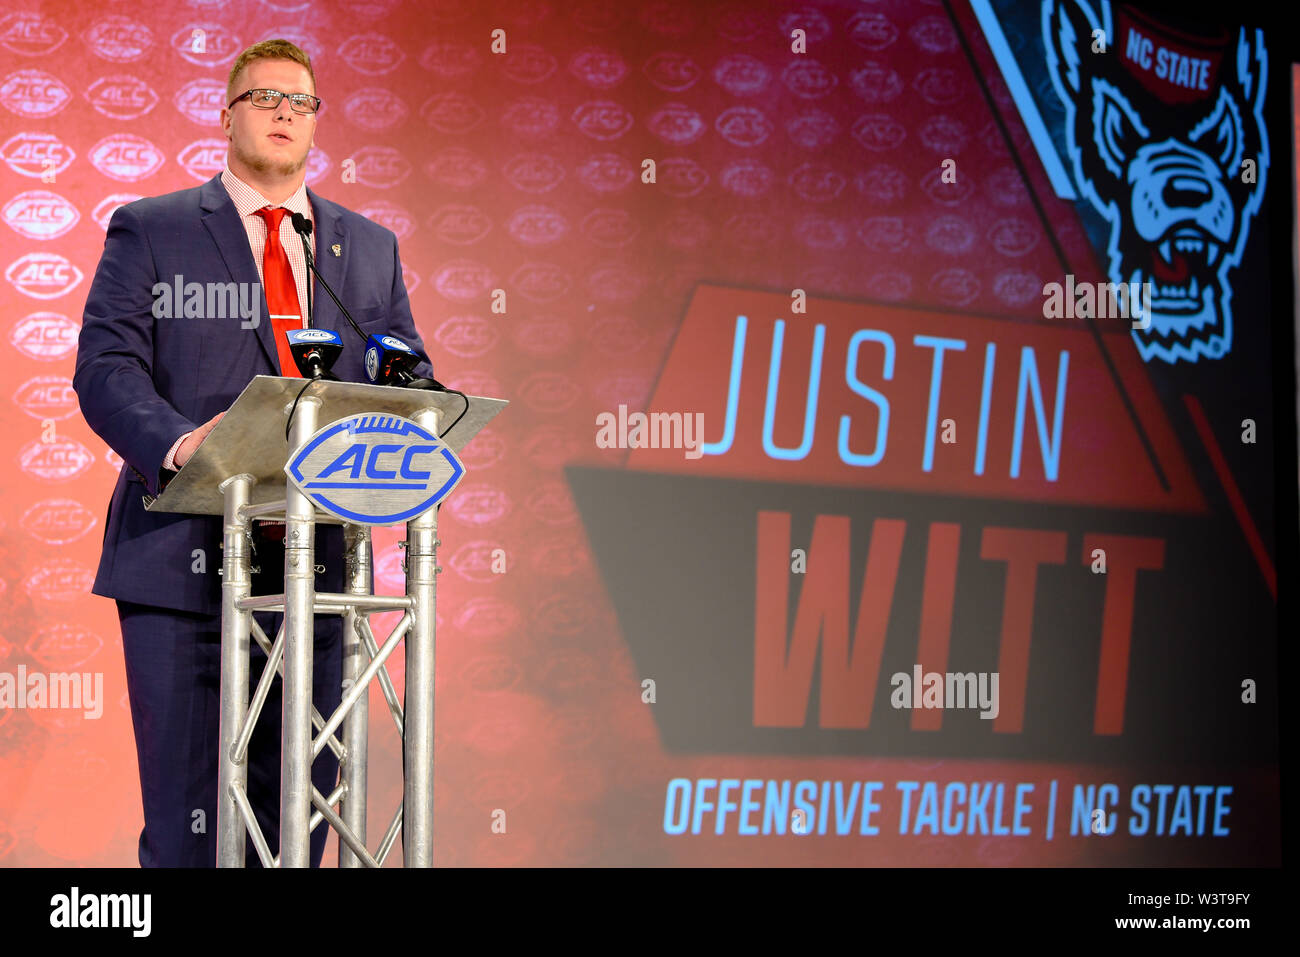 Charlotte, North Carolina, USA. 17th July, 2019. NC State JUSTIN WITT (OT) speaking to reporters during the ACC Atlantic Division Coach/Student interviews on July 17, 2019 at the Westin Hotels & Resorts in Charlotte, N.C. Credit: Ed Clemente/ZUMA Wire/Alamy Live News - Stock Image